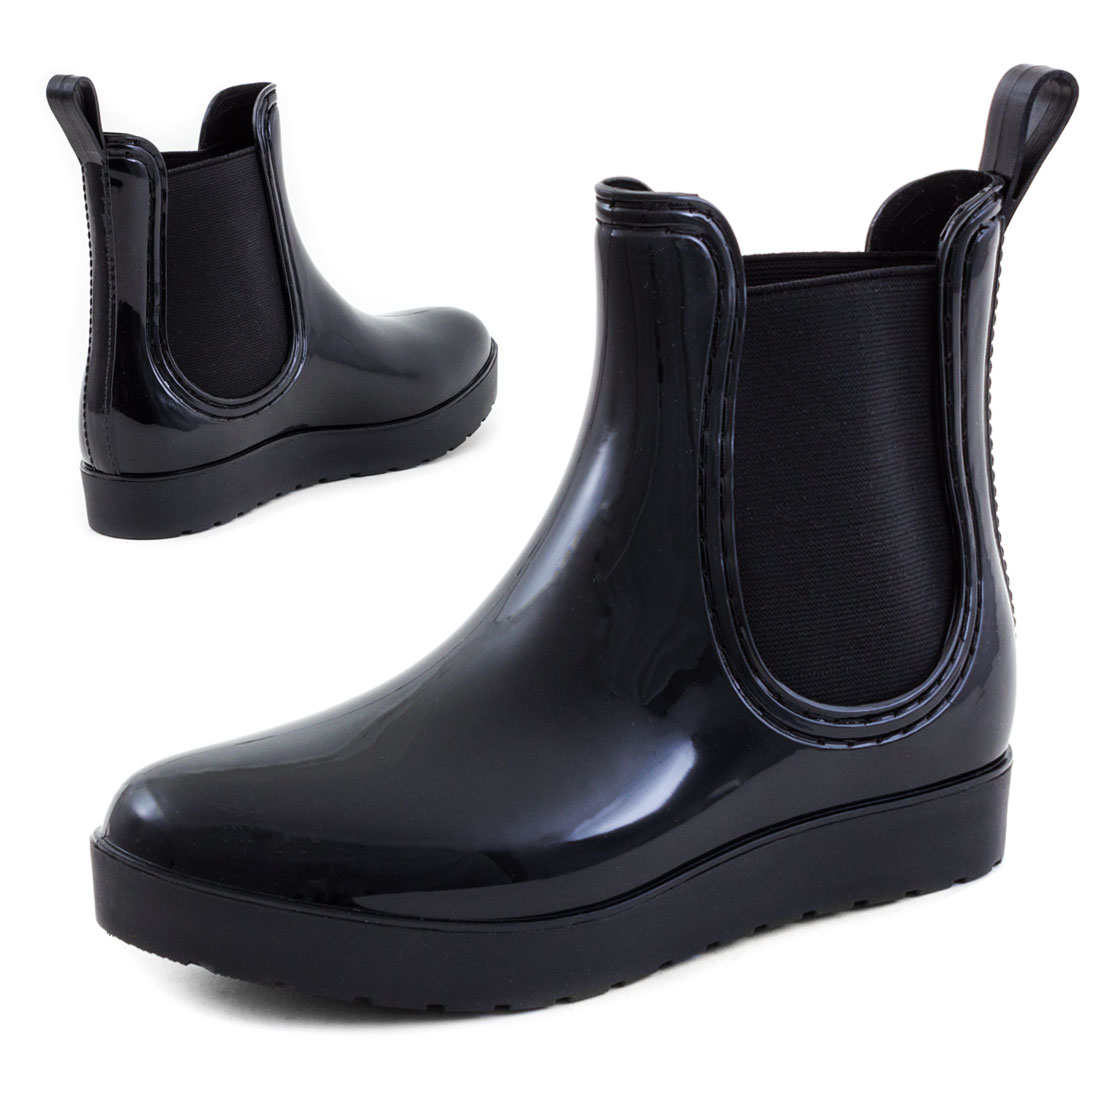 neu damen lackoptik chelsea boots gummistiefel stiefeletten gr 36 37 38 39 40 41 ebay. Black Bedroom Furniture Sets. Home Design Ideas